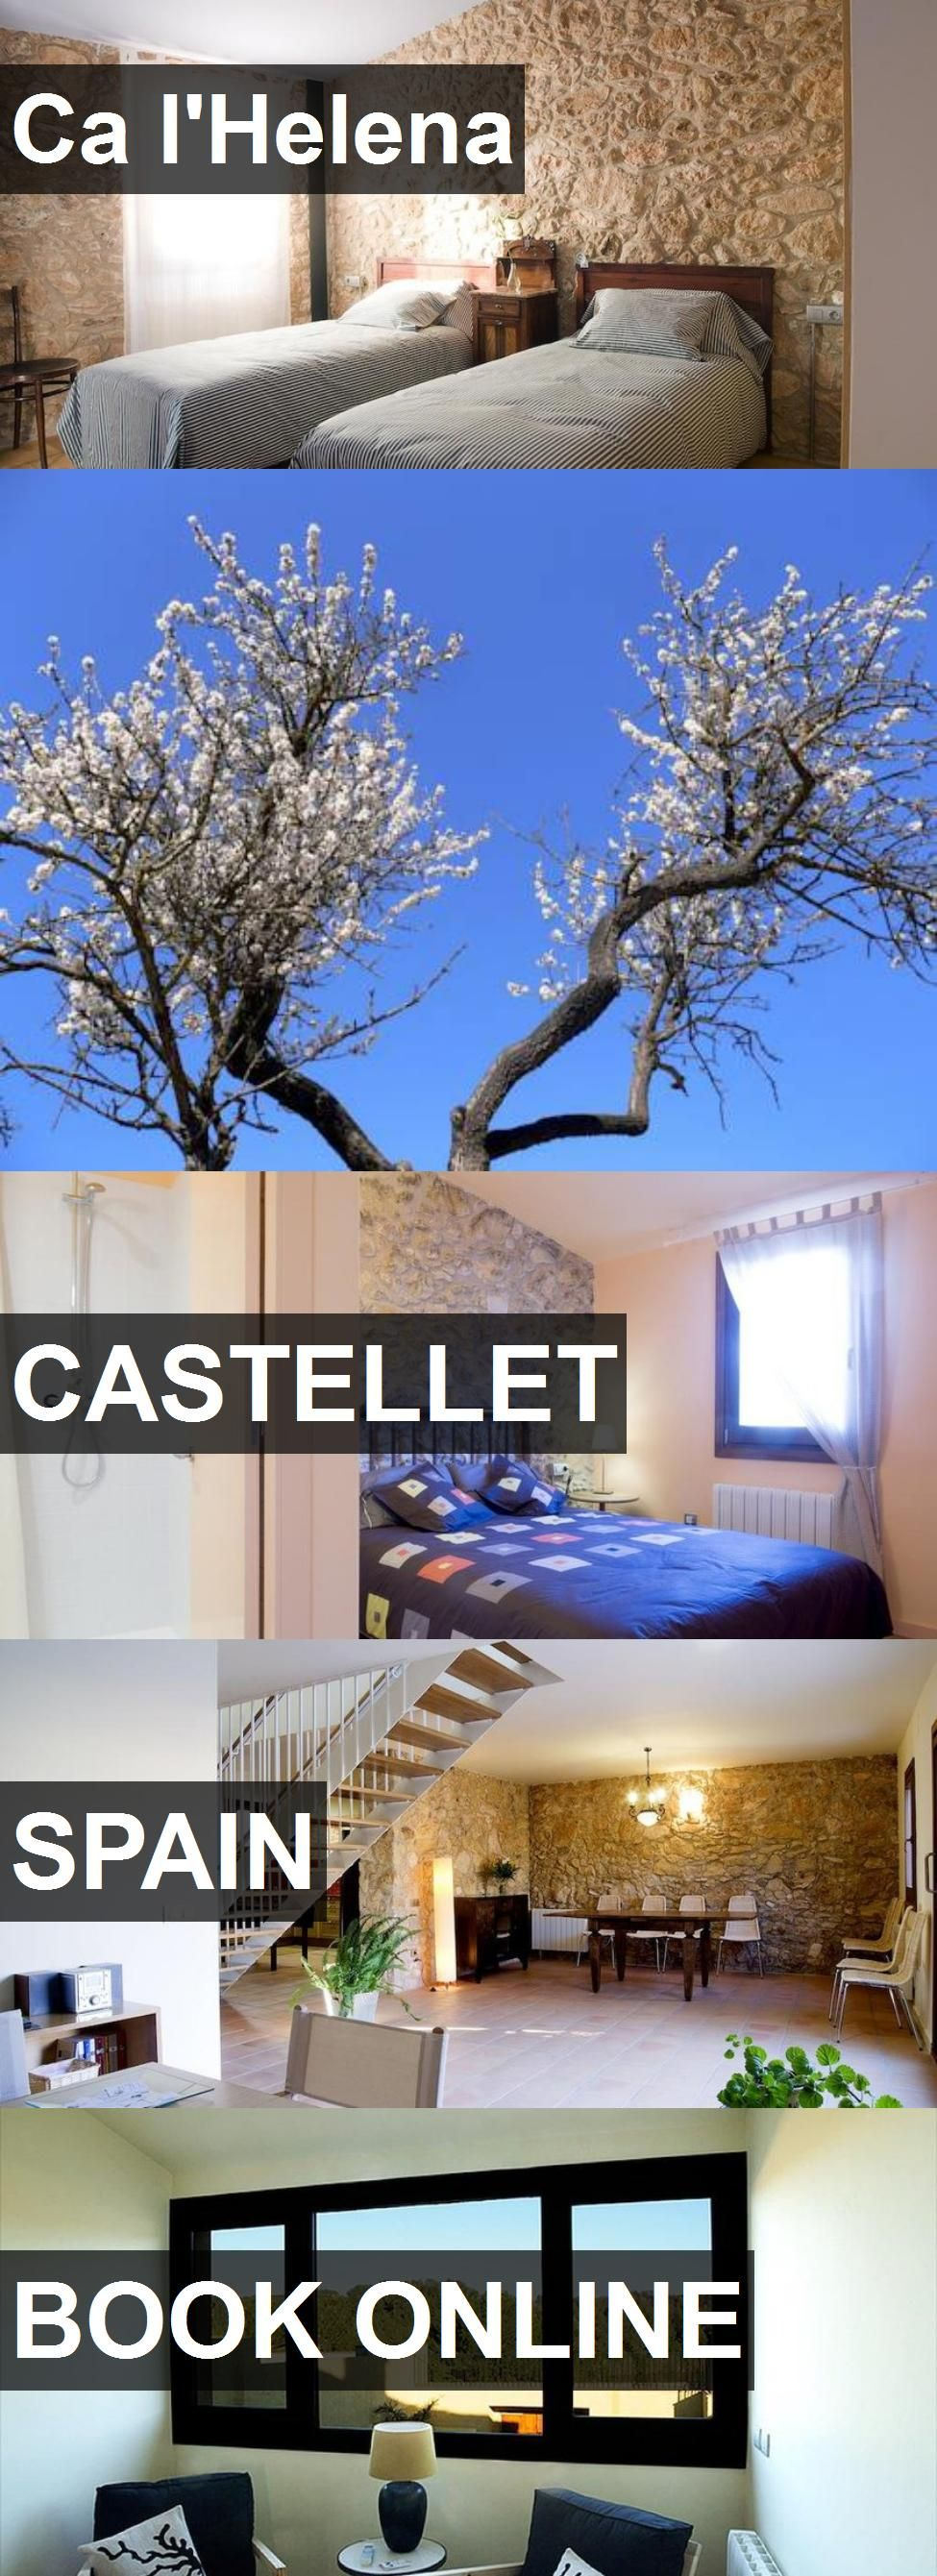 Hotel Ca l'Helena in Castellet, Spain. For more